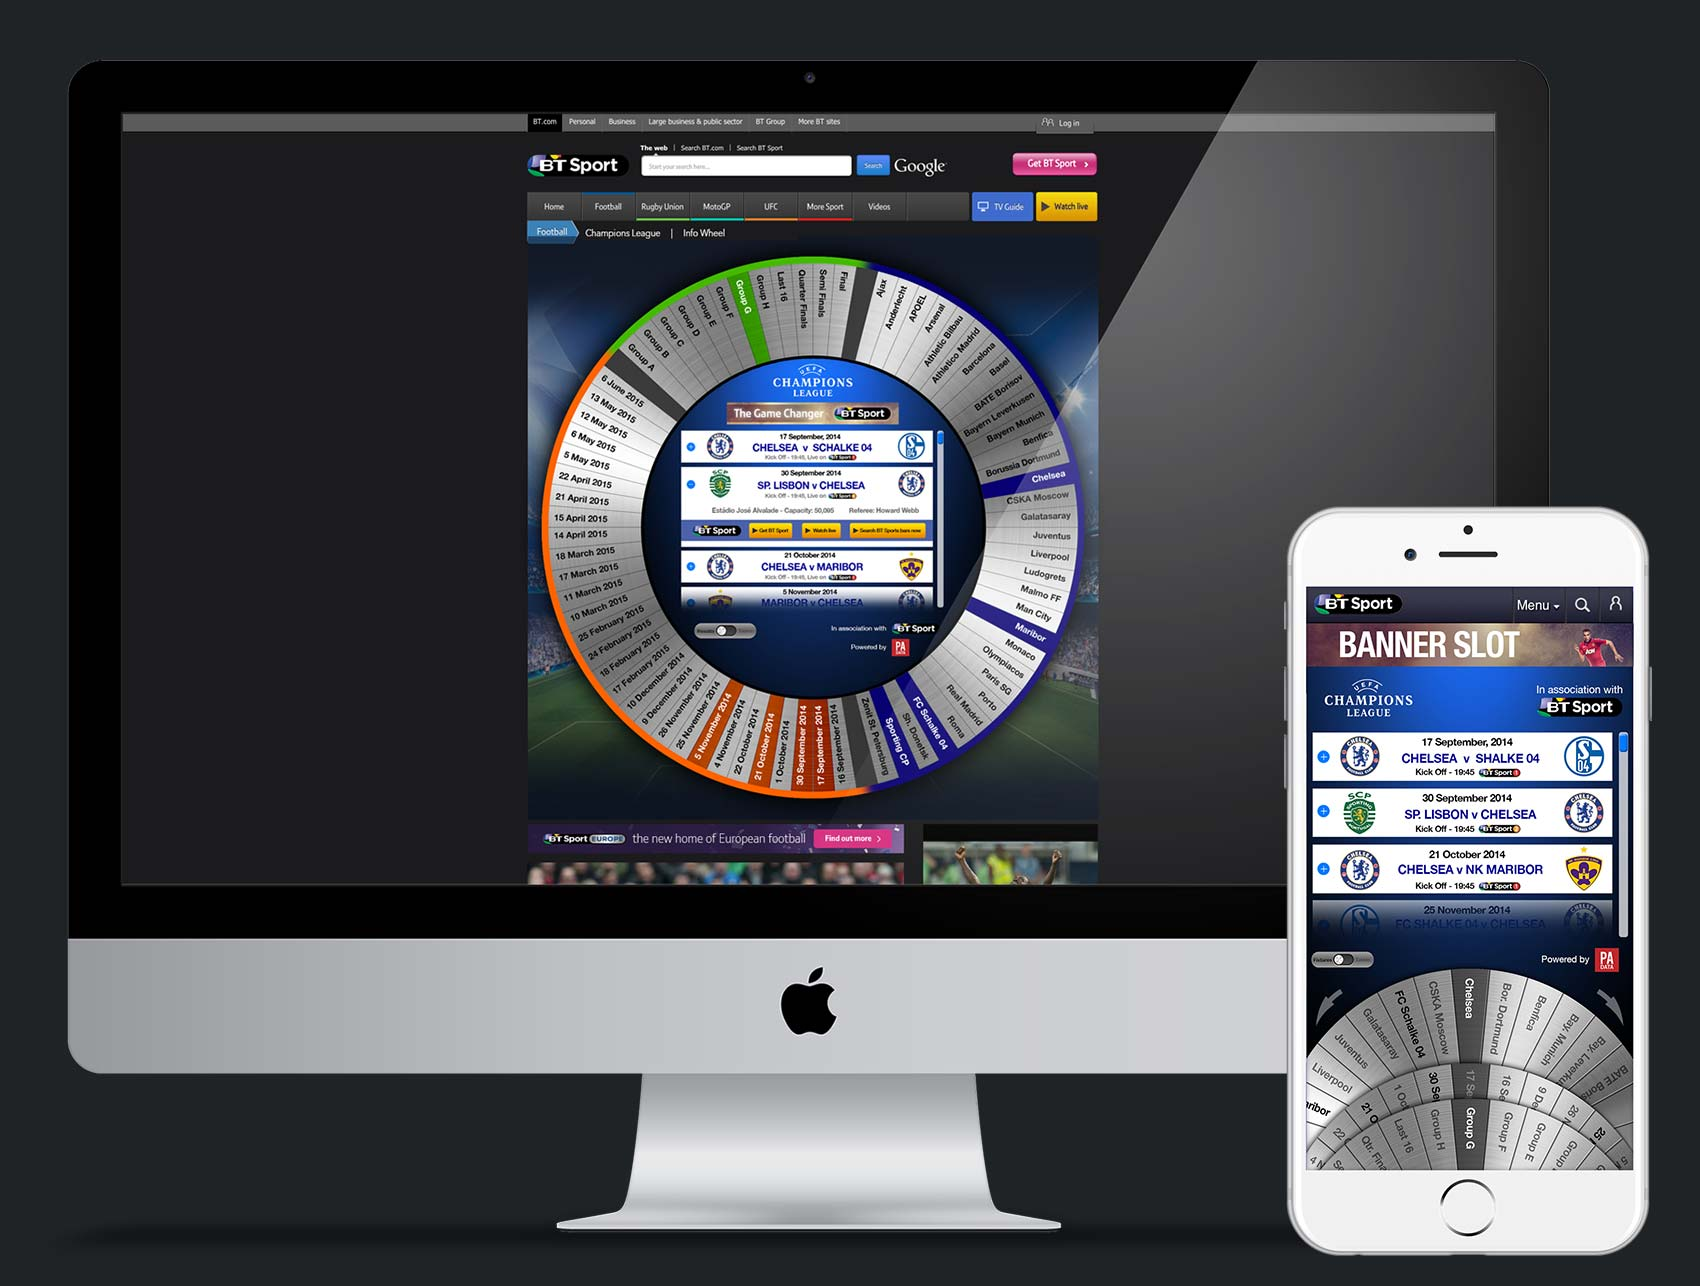 """Fixture Wheel. A concept which was made to pitch. An interactive digital product which serves as an easy way to """"Scan"""" fixtures for events such as the World Cup or Olympics"""